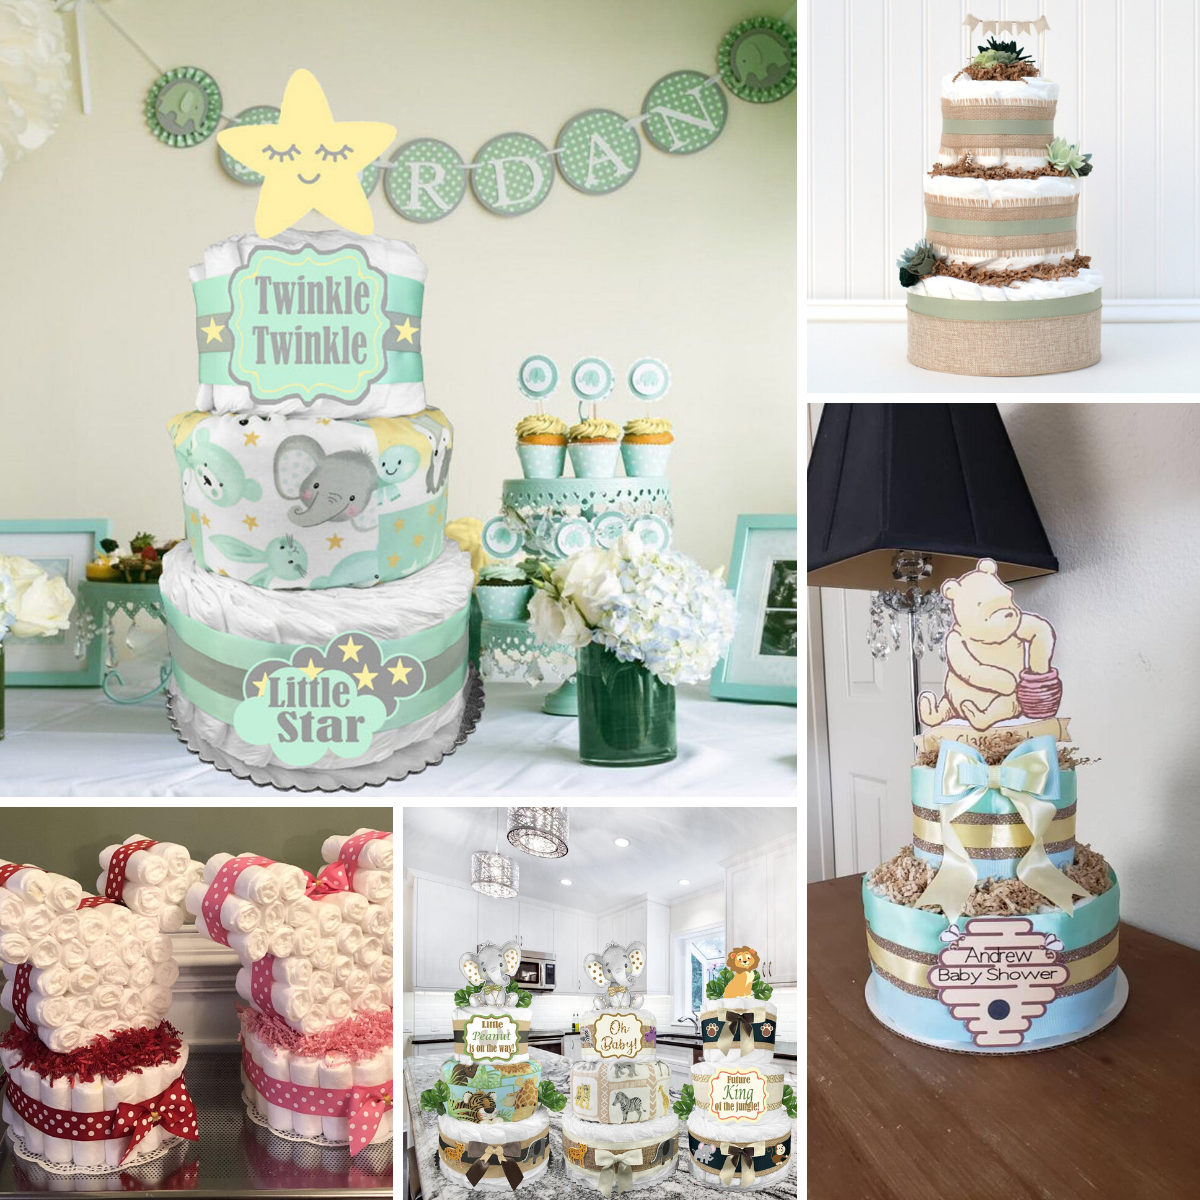 a collage f gender neutral diaper cakes for a baby shower